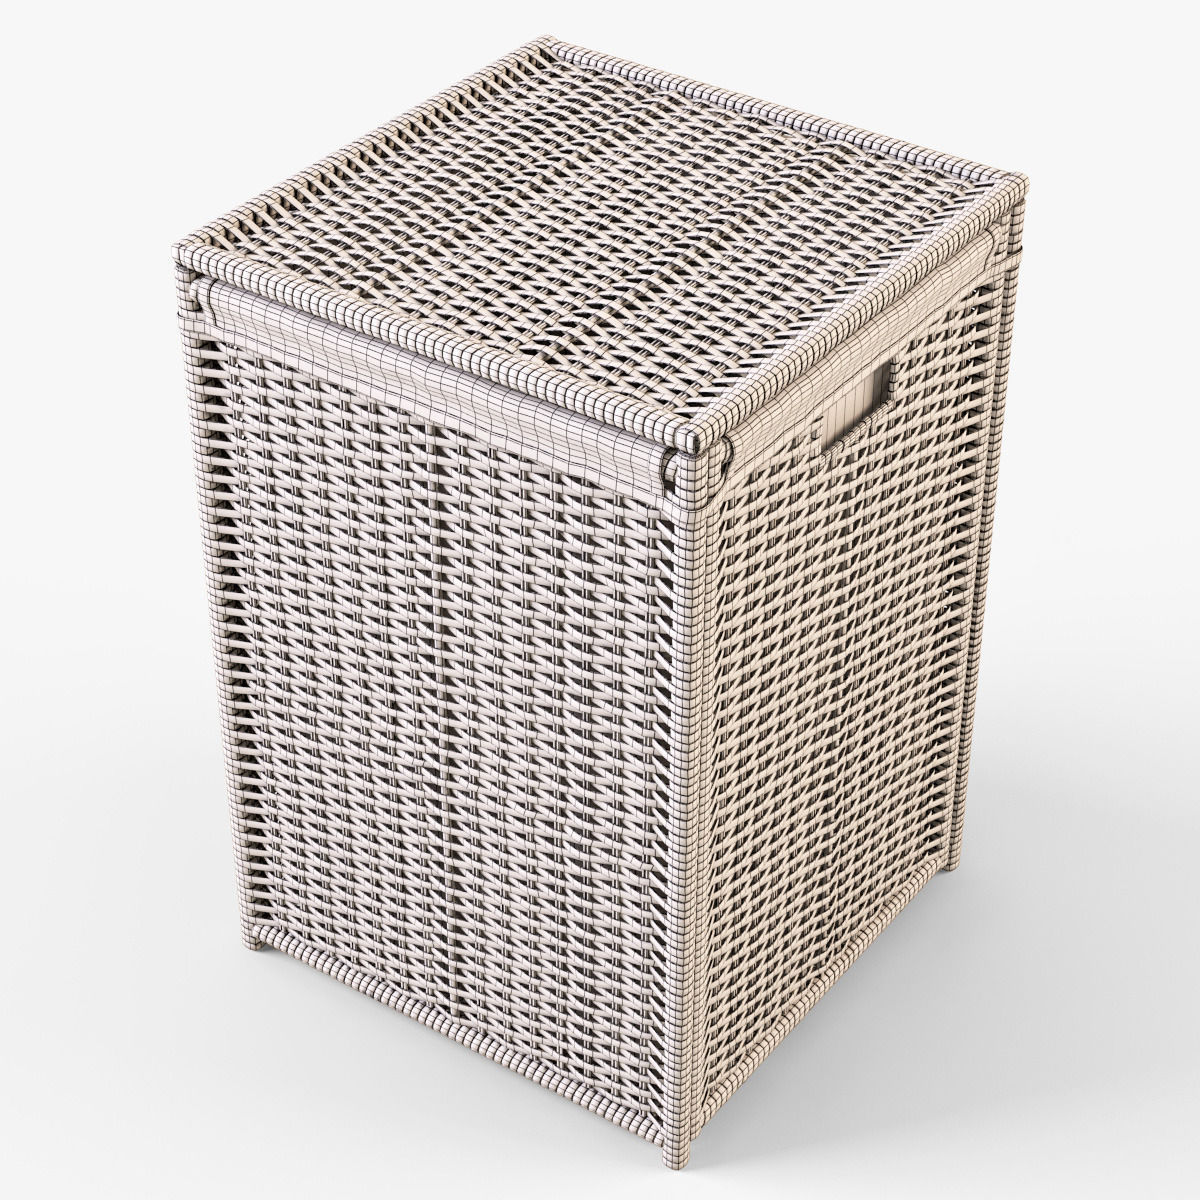 Well-known Wicker Laundry Basket 04 3D model | CGTrader UU29